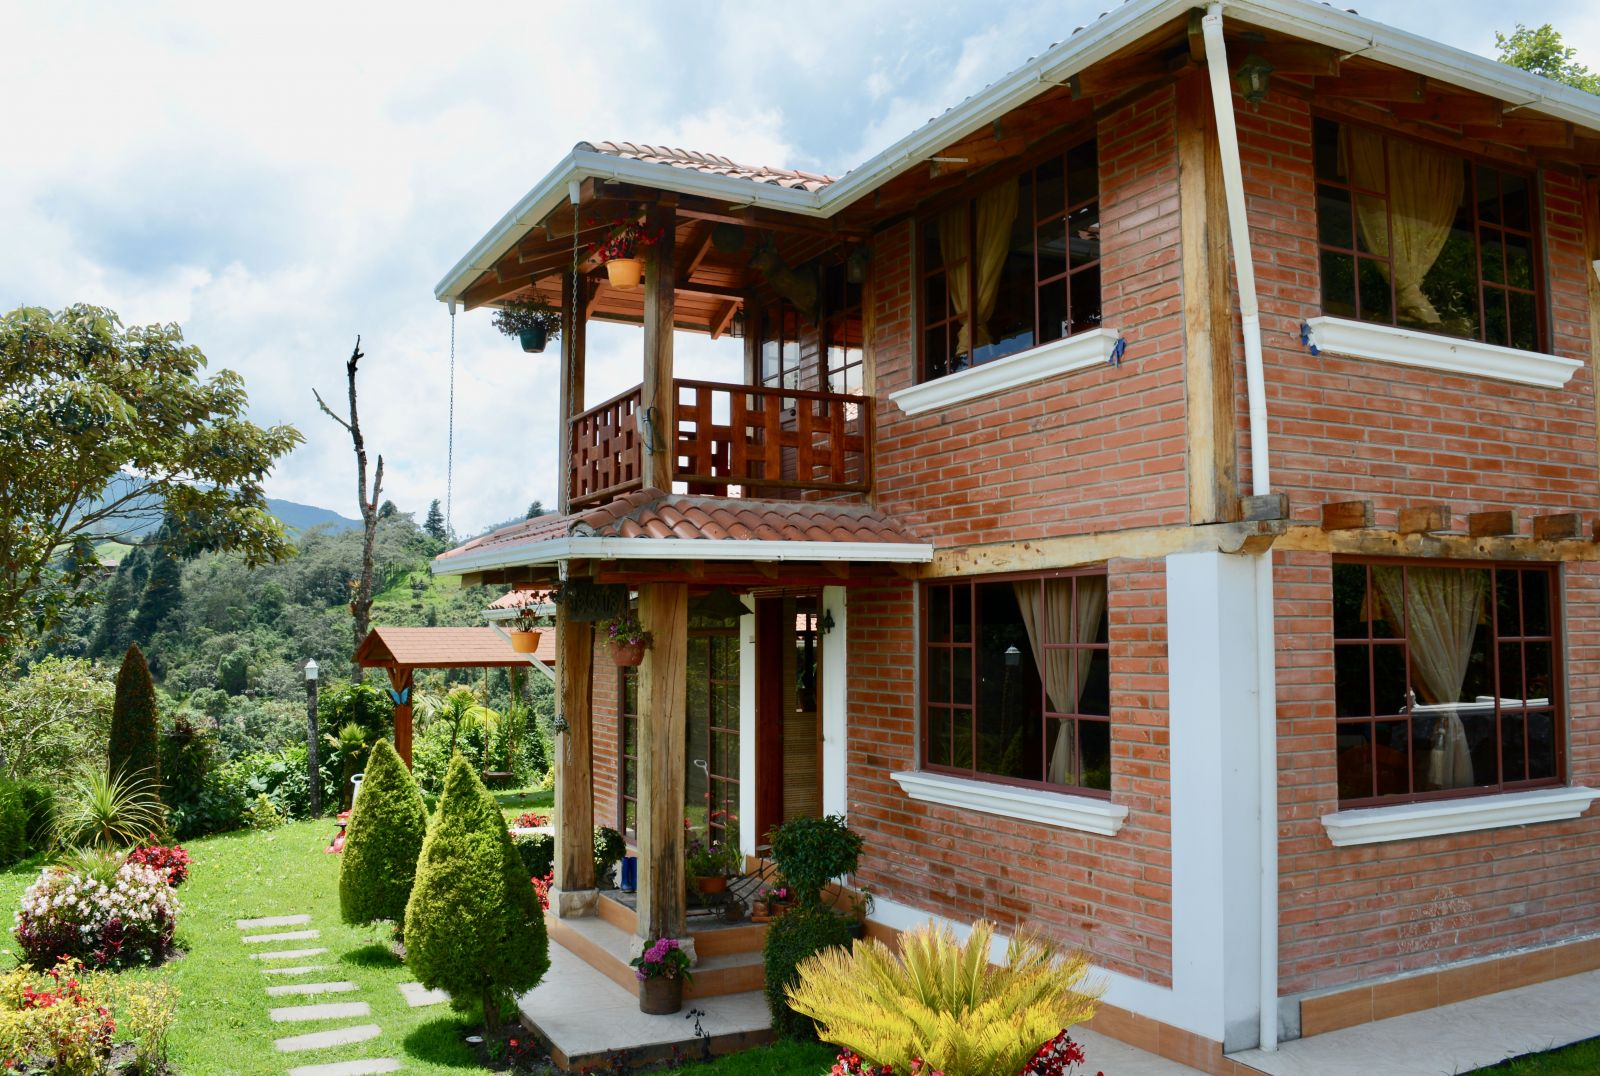 yunguilla-house-deysi-collaguazo-ecuador